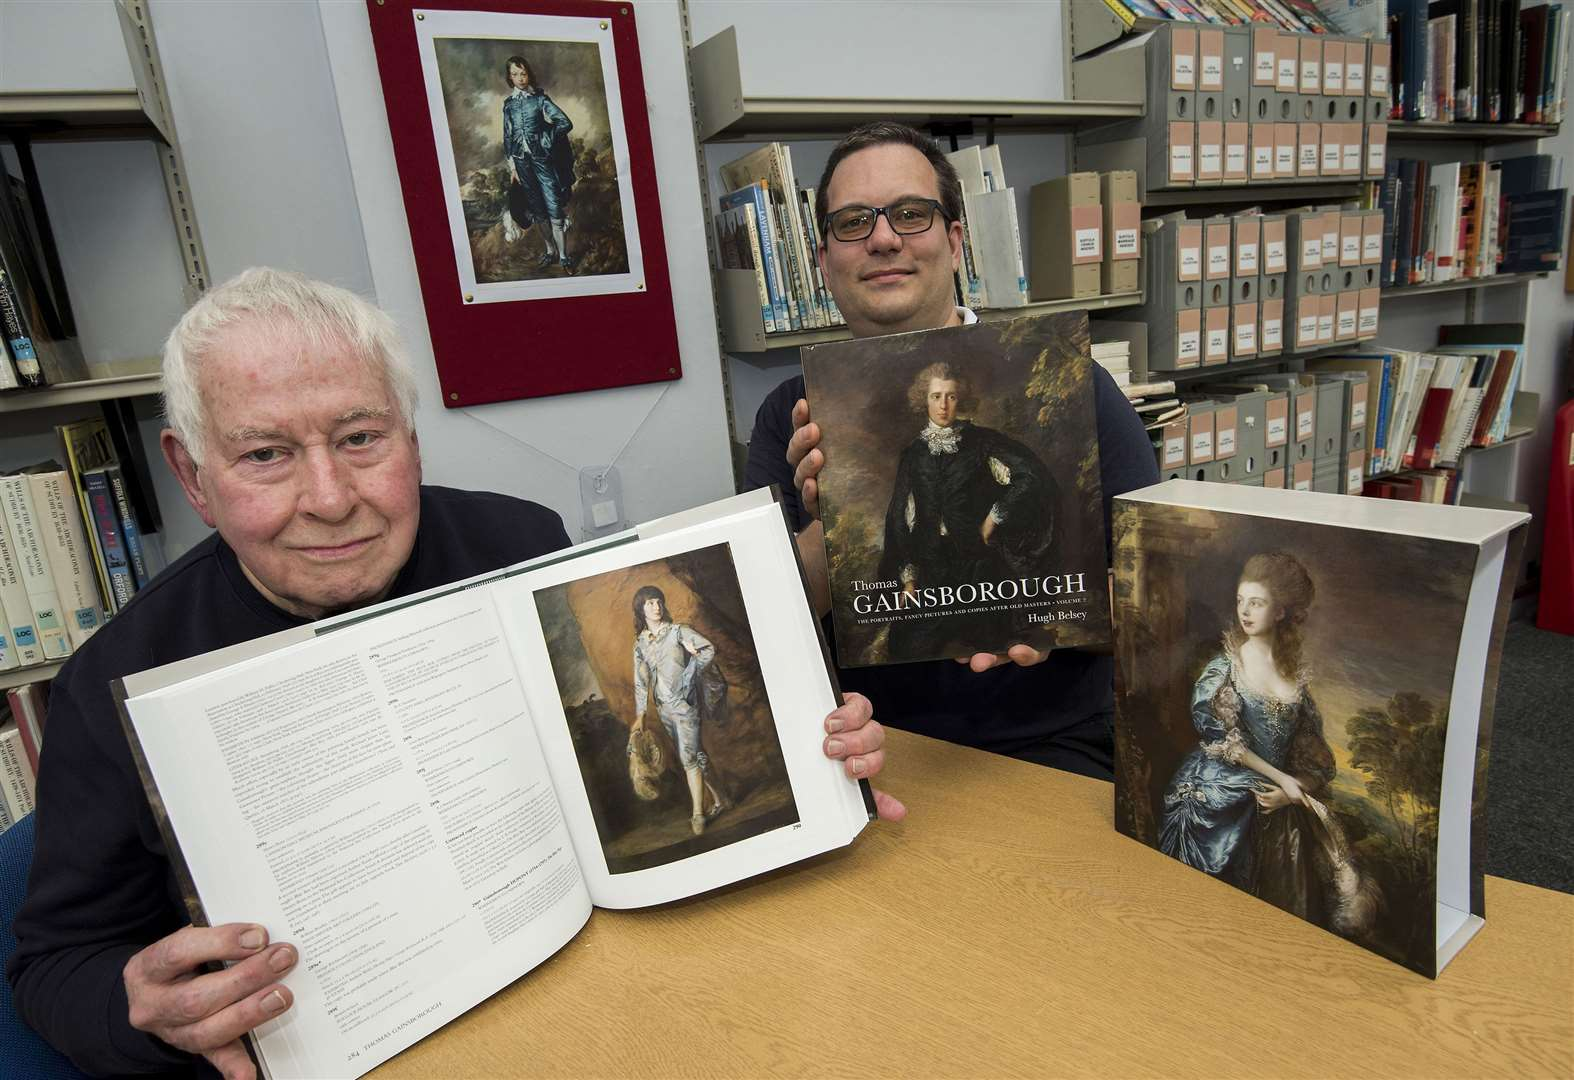 FEATURE: Sudbury historian delves into lost teenage years of Thomas Gainsborough